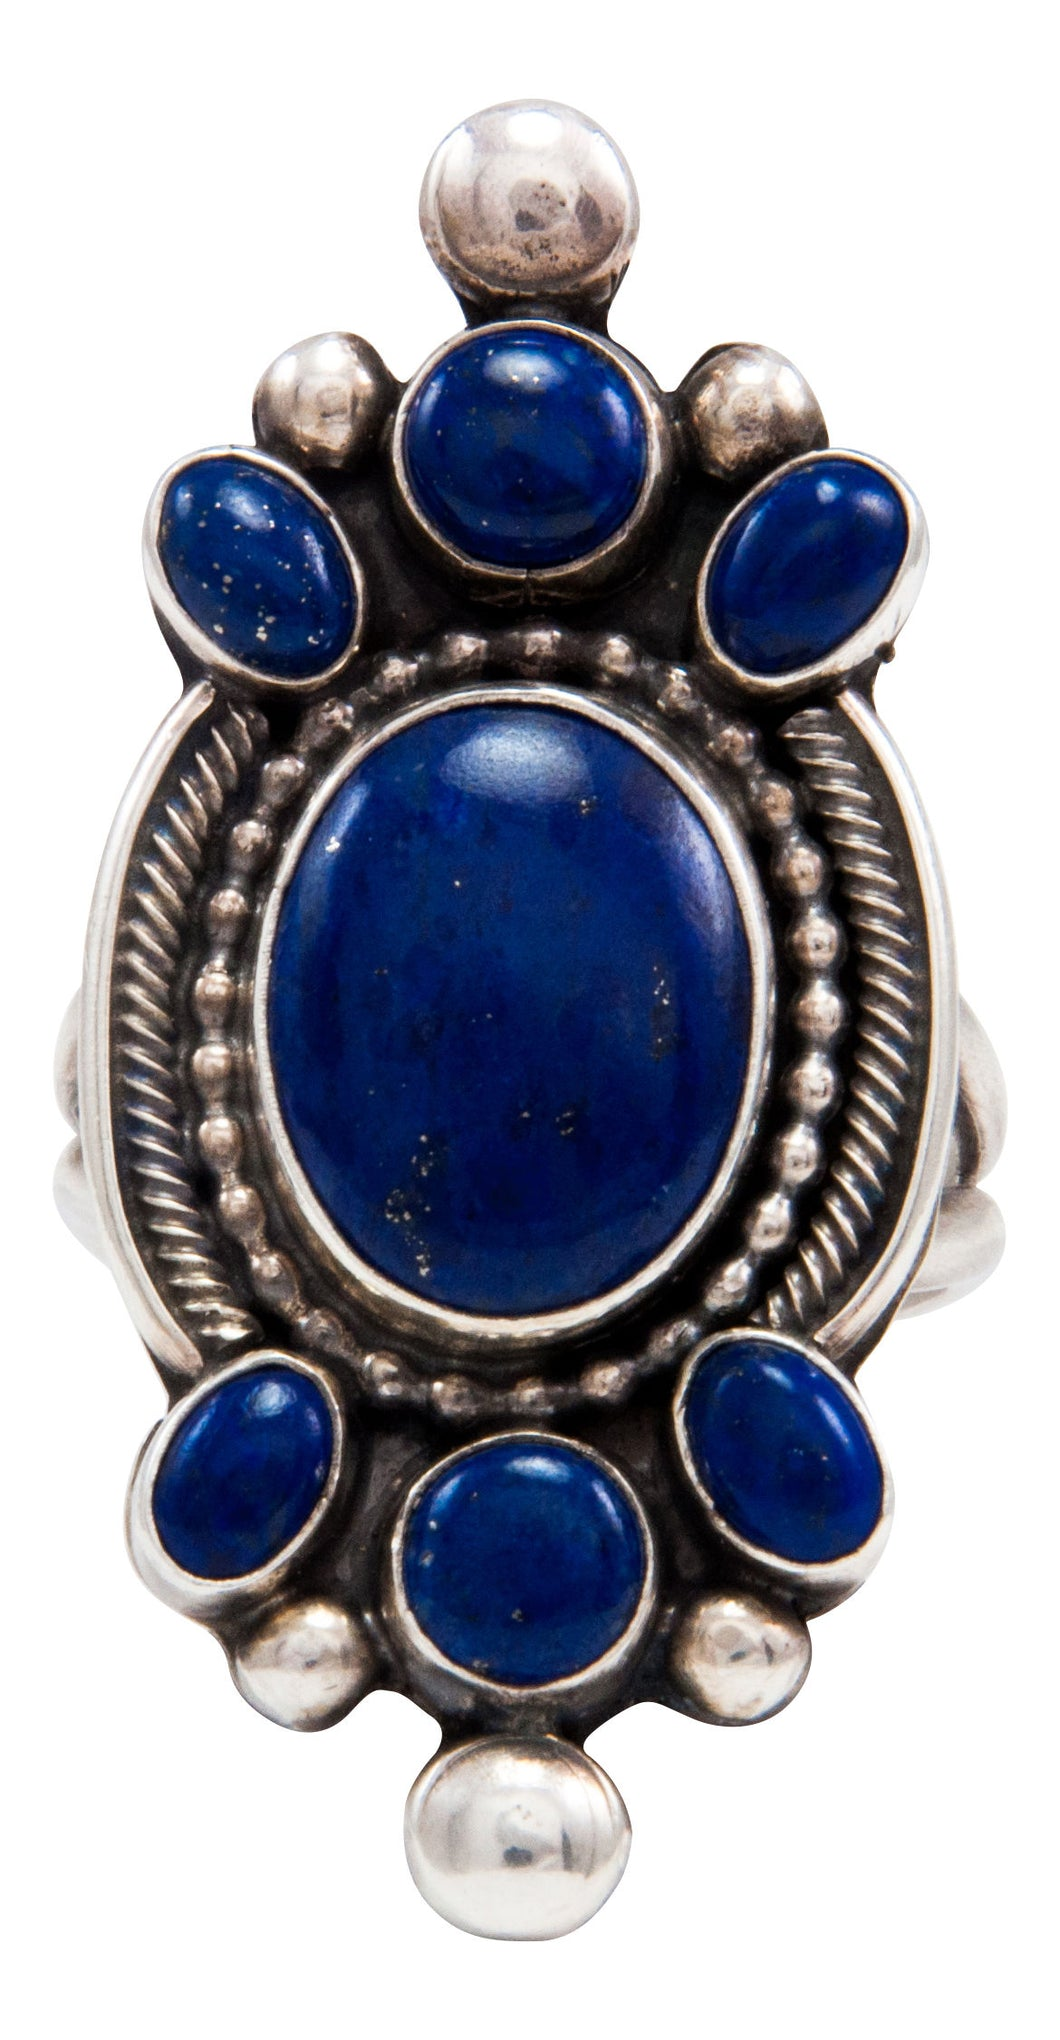 Navajo Native American Lapis Ring Size 10 1/2 by RRB SKU232056